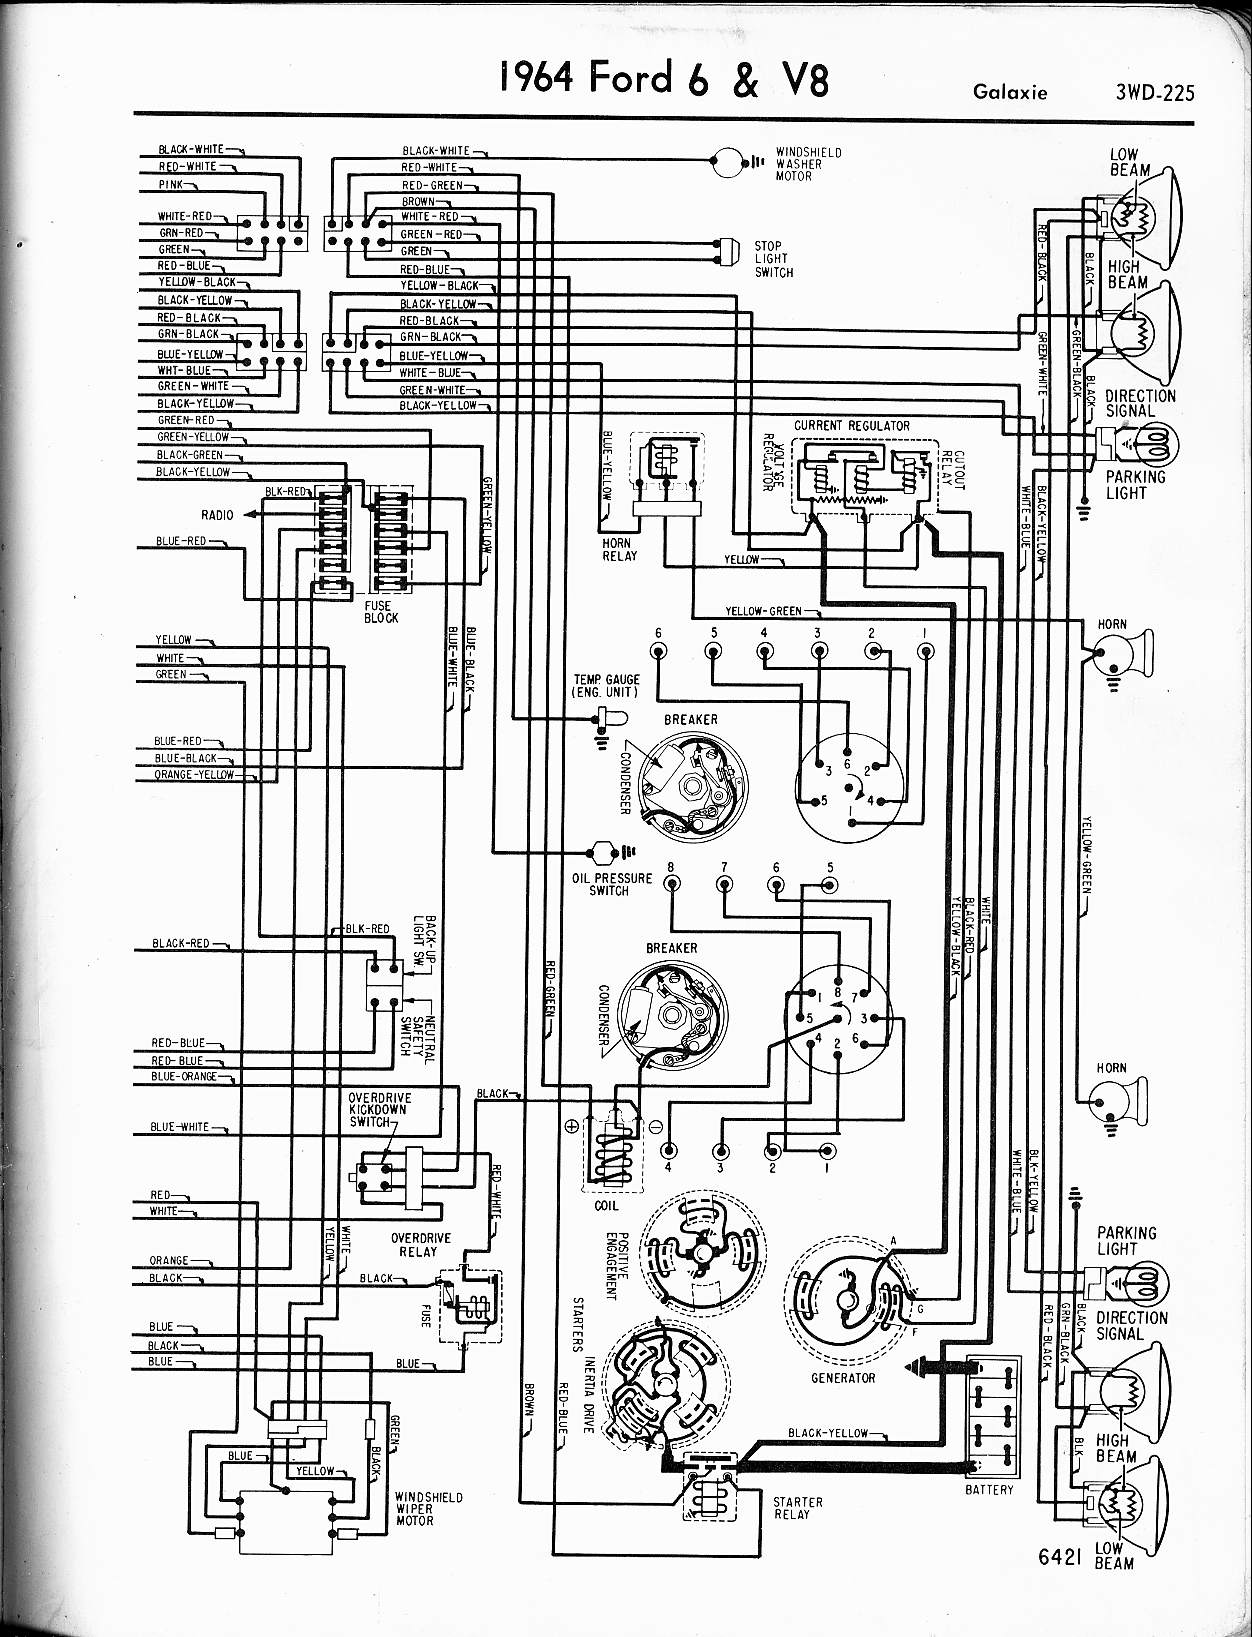 MWire5765 225 1964 wiring woes ford muscle forums ford muscle cars tech forum 1964 falcon wiring diagram at aneh.co